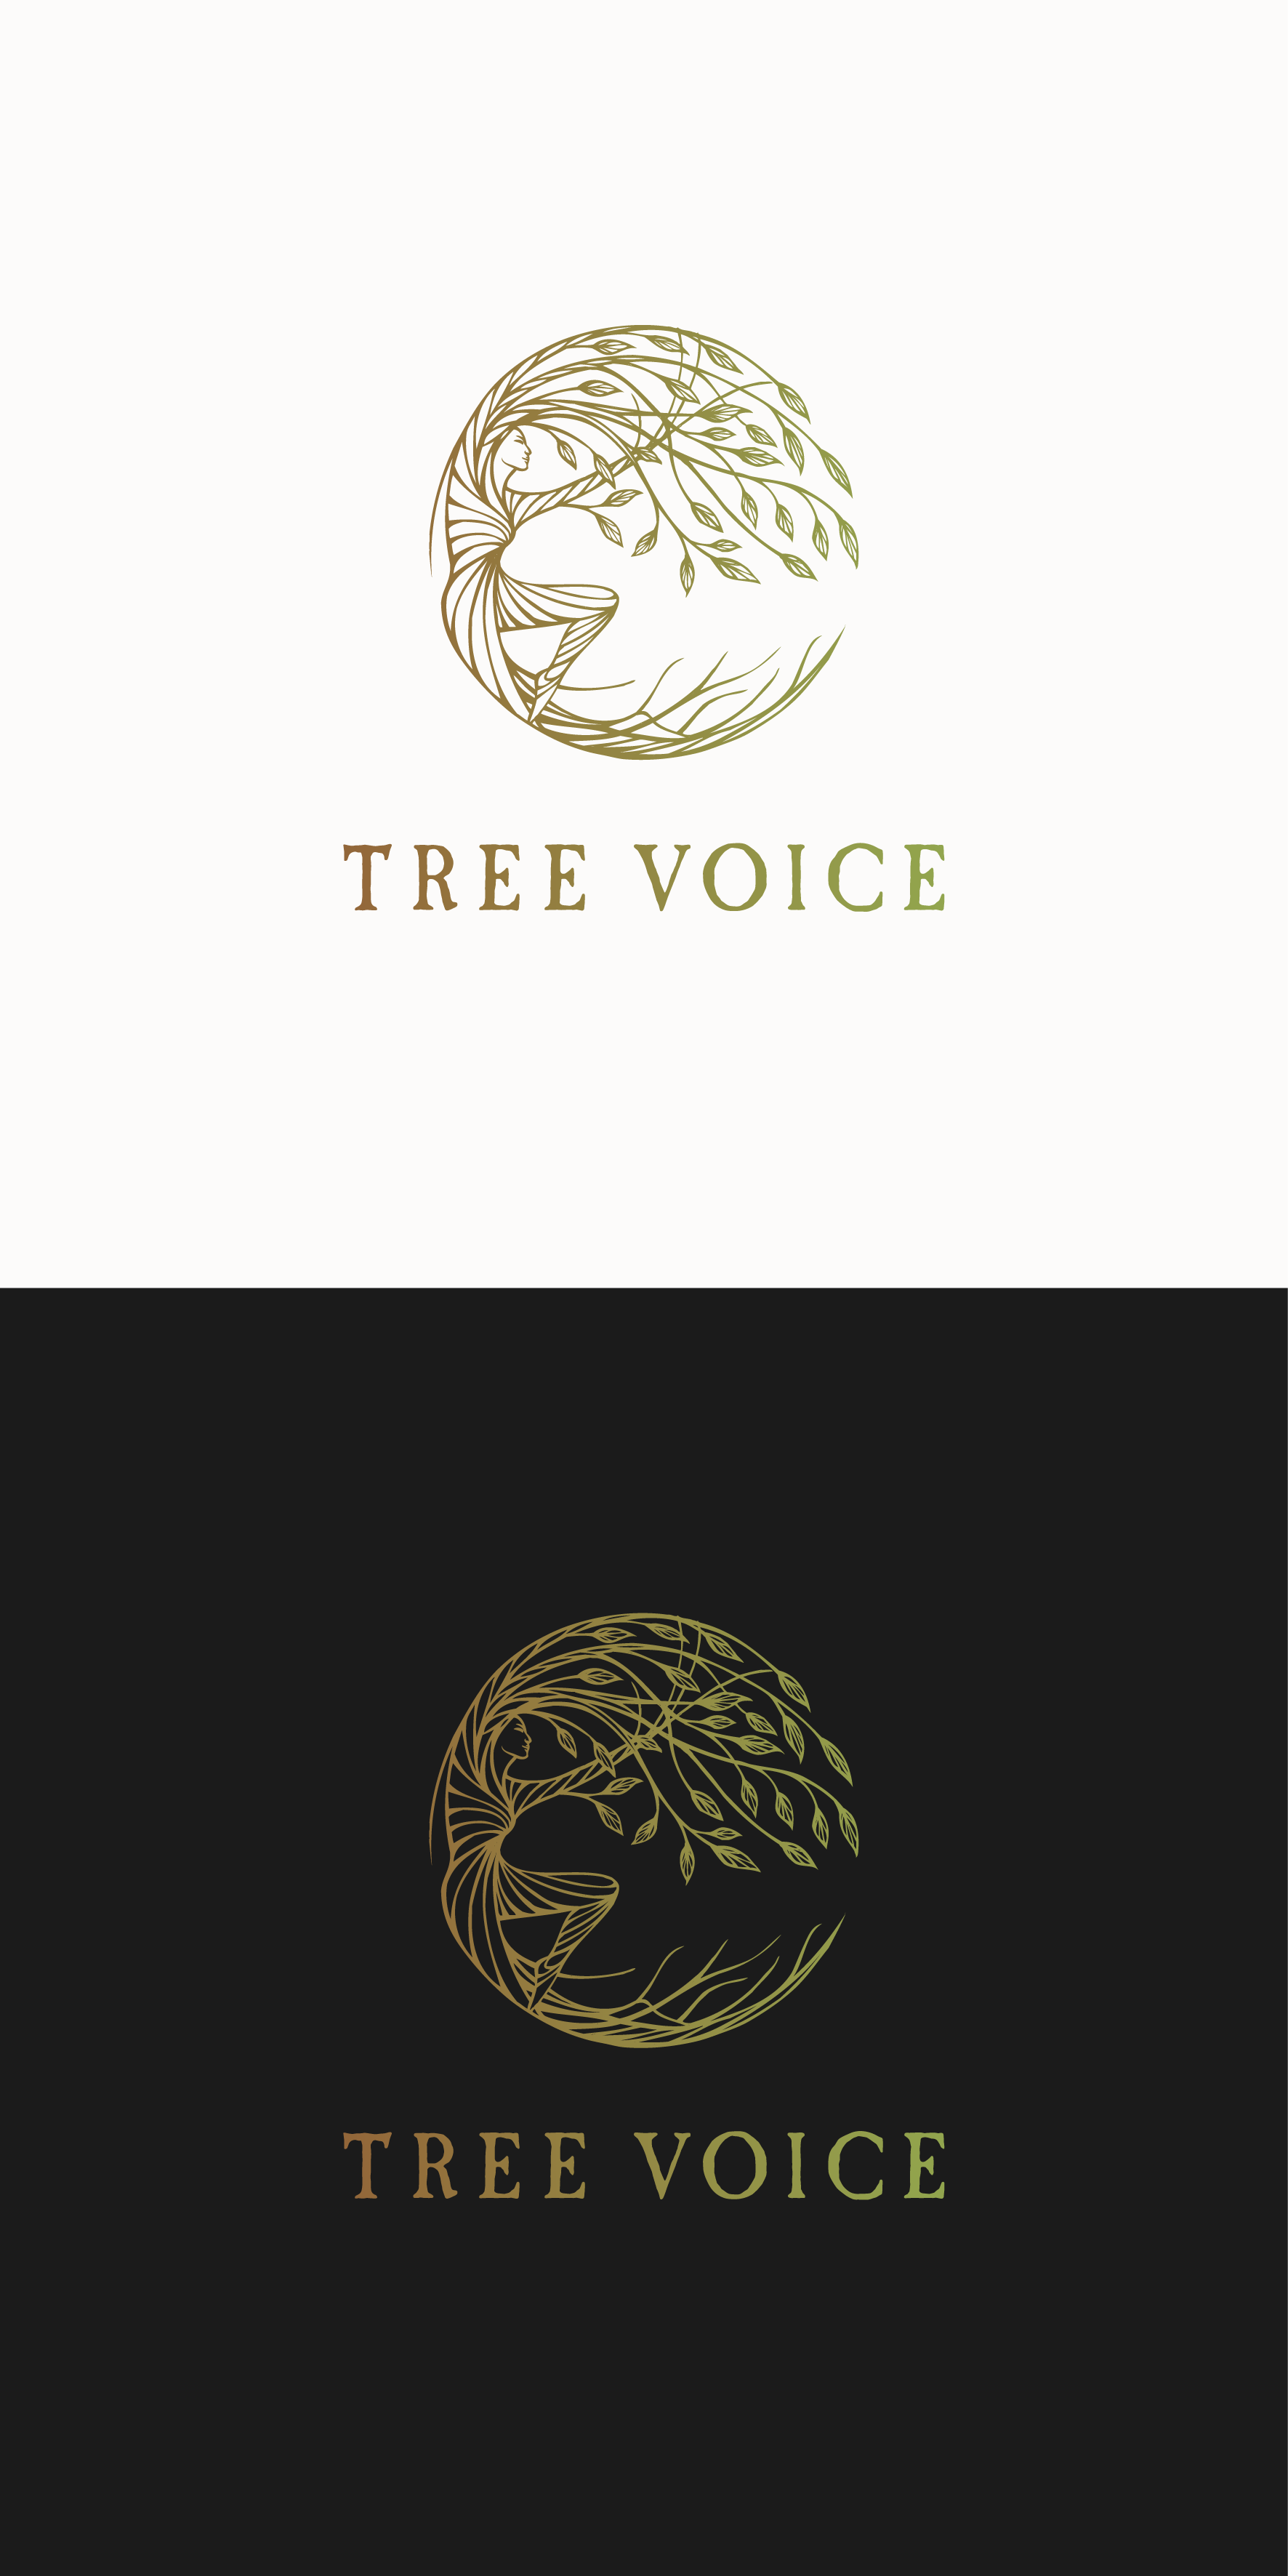 Hand drawn logo design for a person connected to the tree